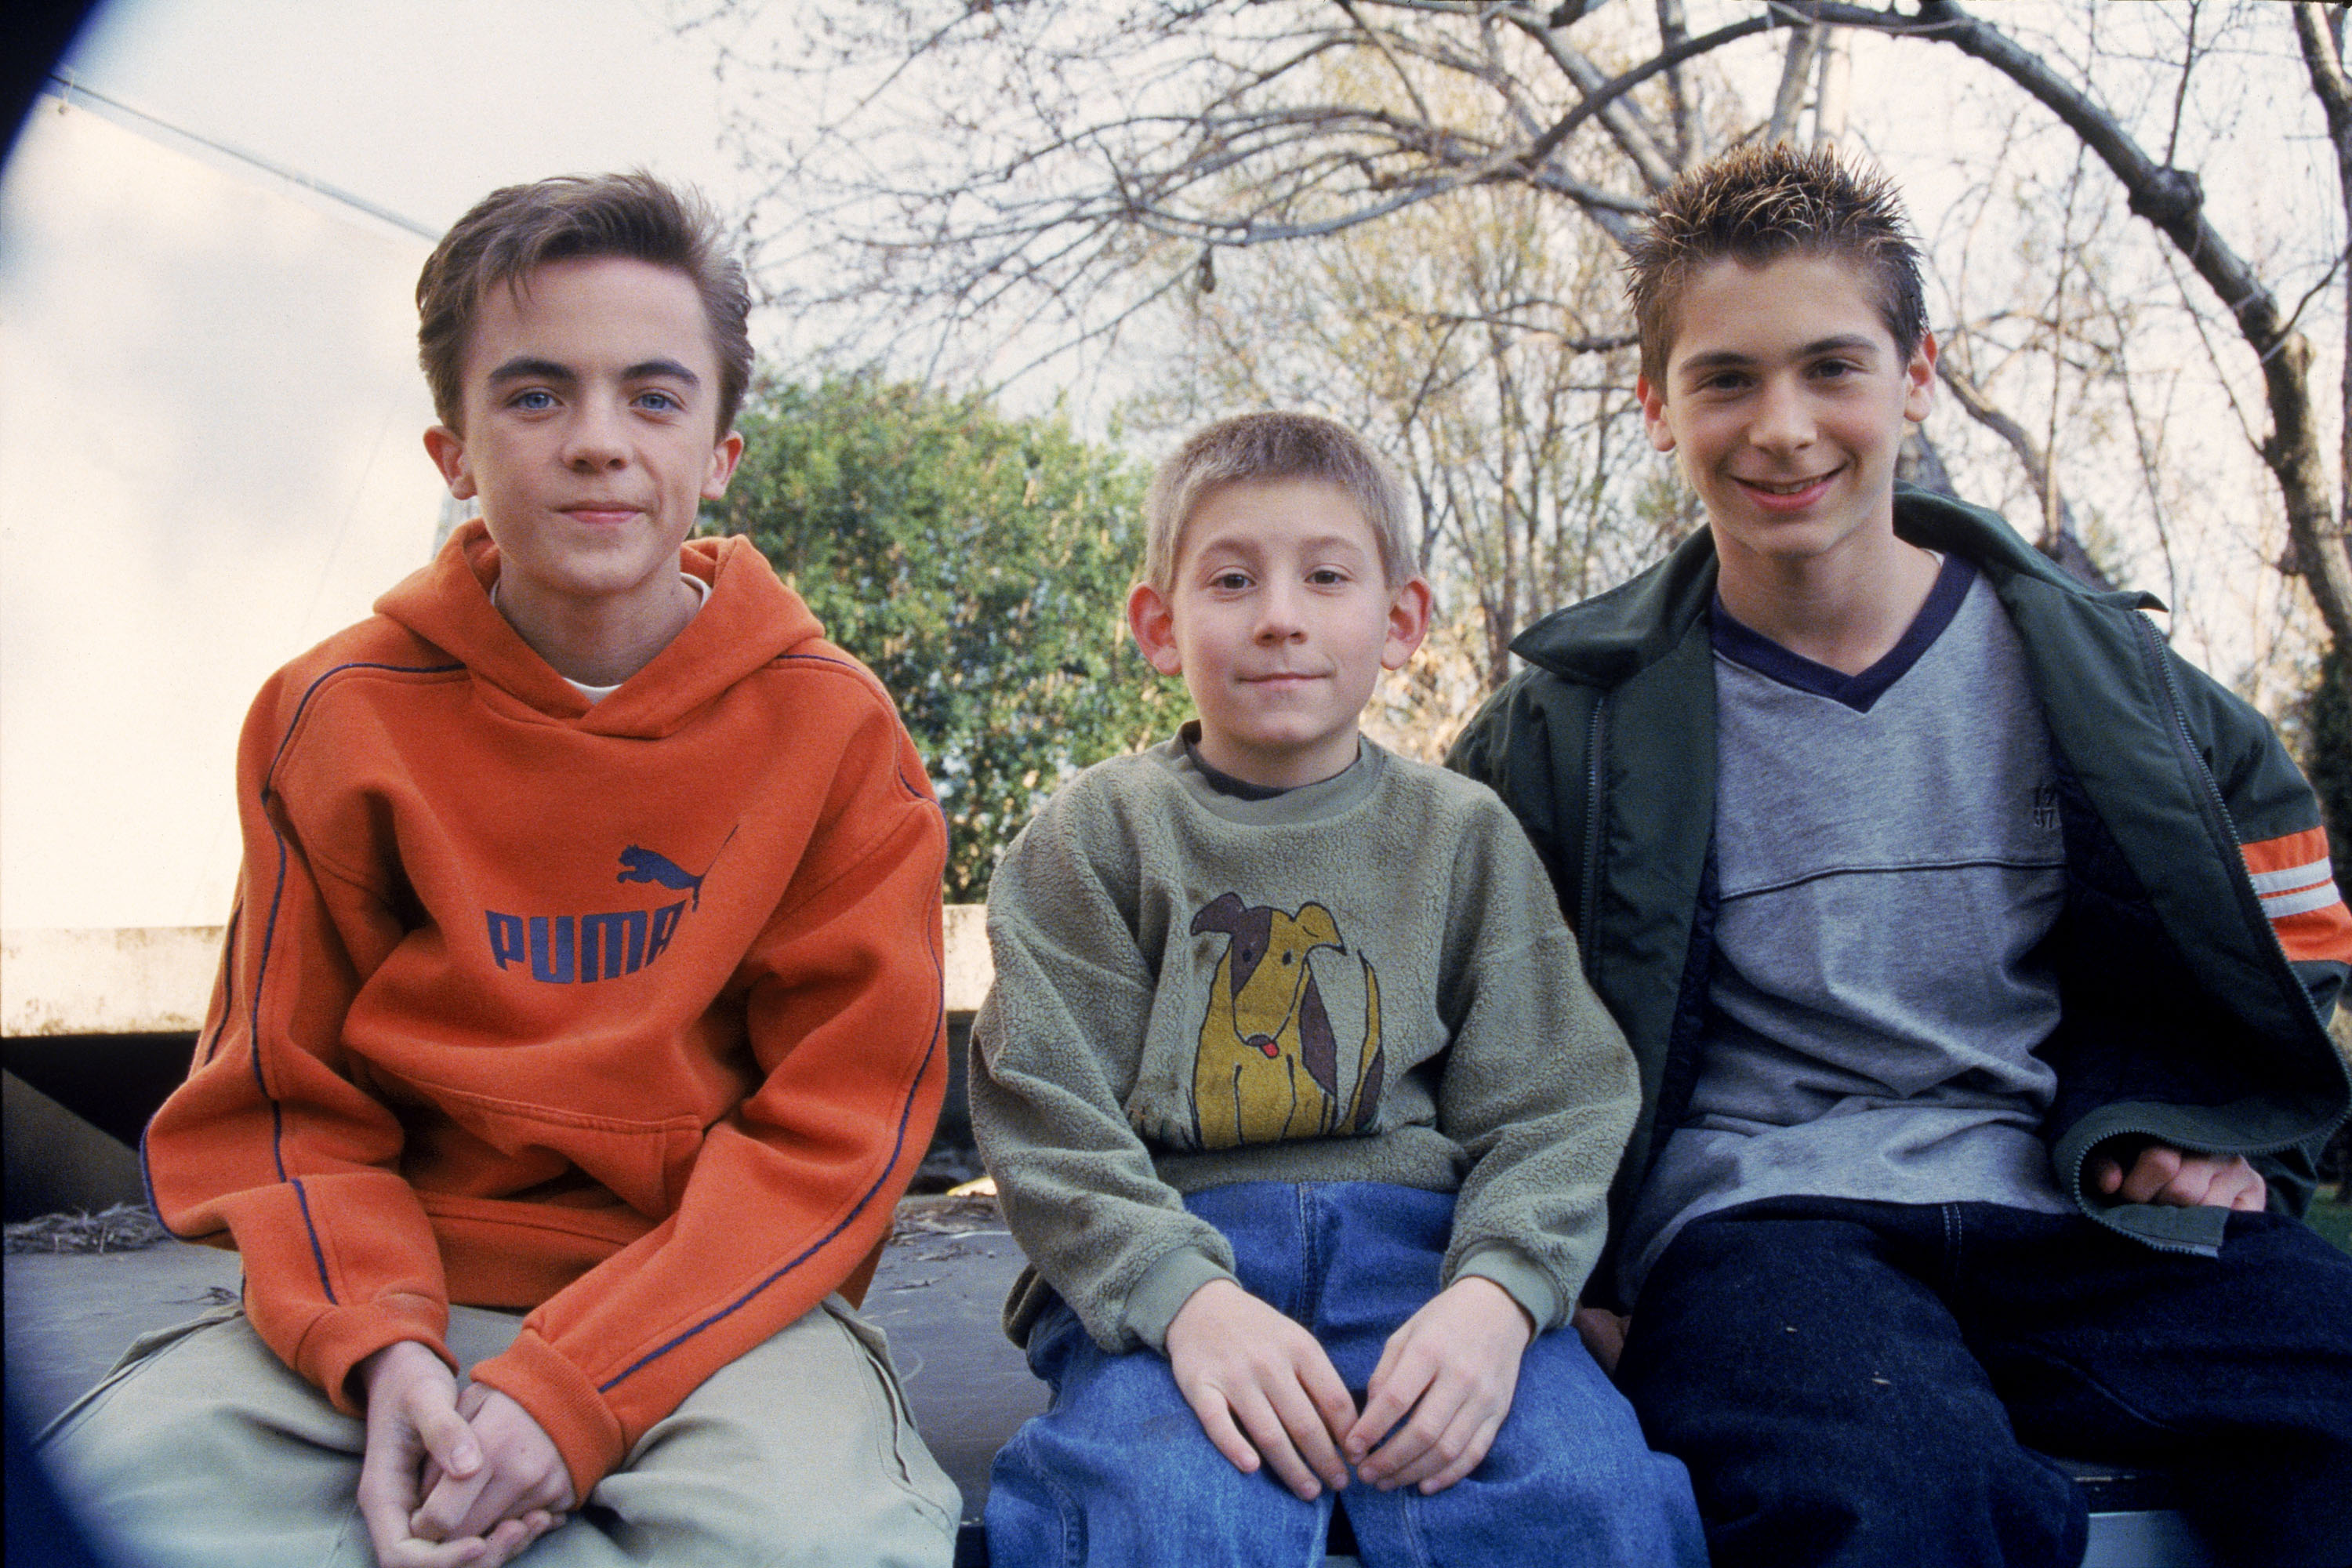 'Malcolm in the Middle' reunion possible, says Bryan ... |Malcolm In The Middle Reunion Dewey